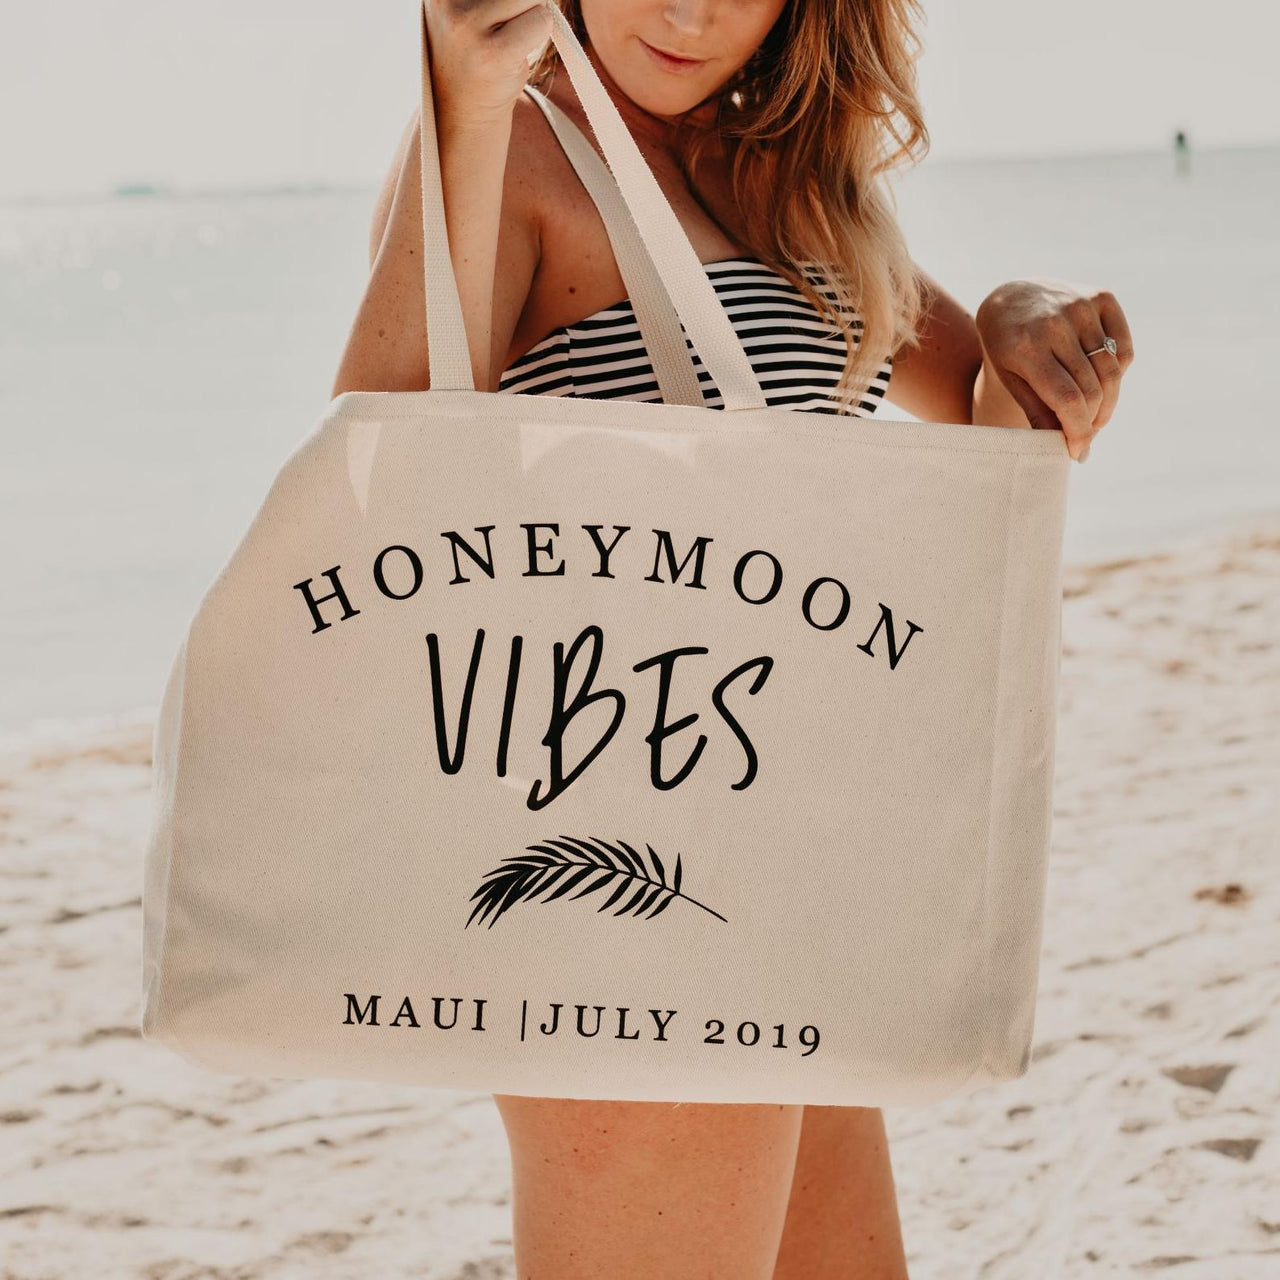 Honeymoon Vibes Personalized Canvas Beach Bag for Newlyweds - Rich Design Co